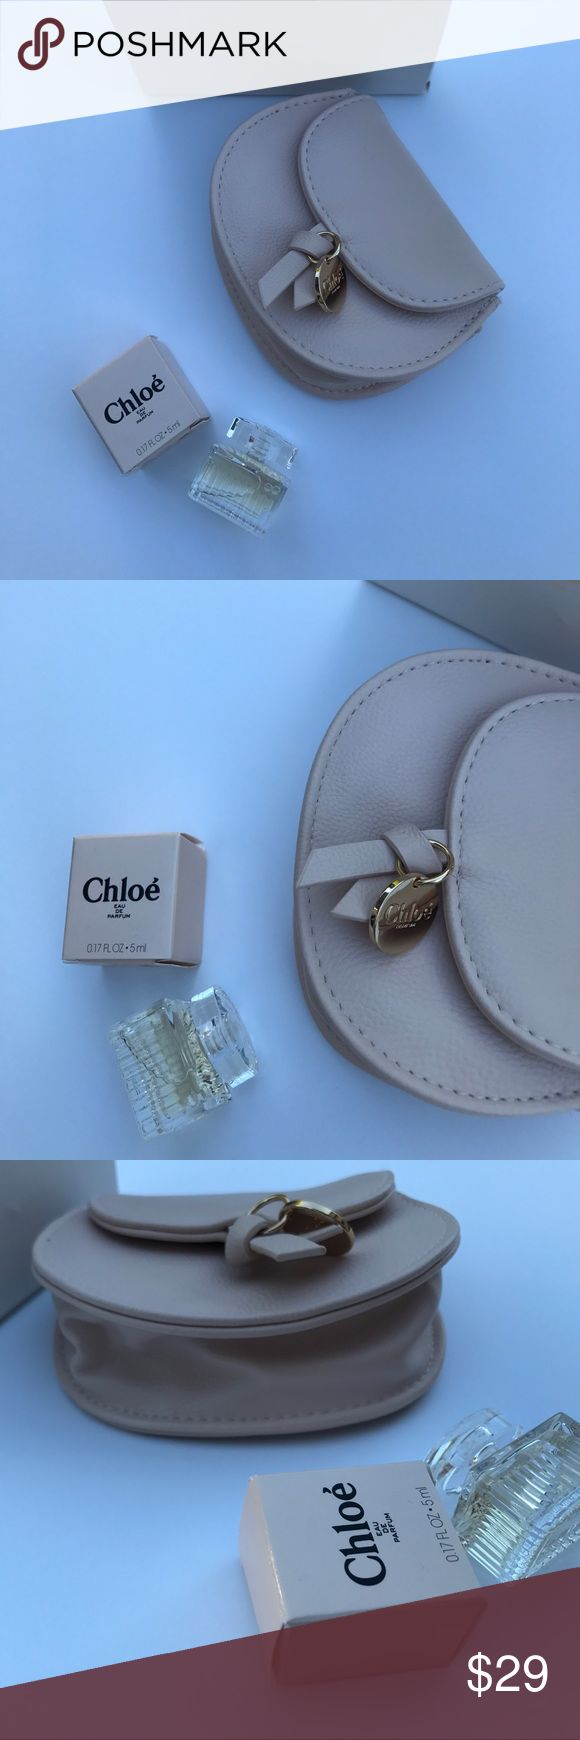 chloe pouch chloe parfum mini , chloe parfum coin new - never used || light baby pink chloe parfums pouch coin purse can fit keys cc cards and lipstick with brand new mini chloe parfum - a petite little glass bottle 🍸🏷authentic , 5 x 5 inches Chloe Makeup